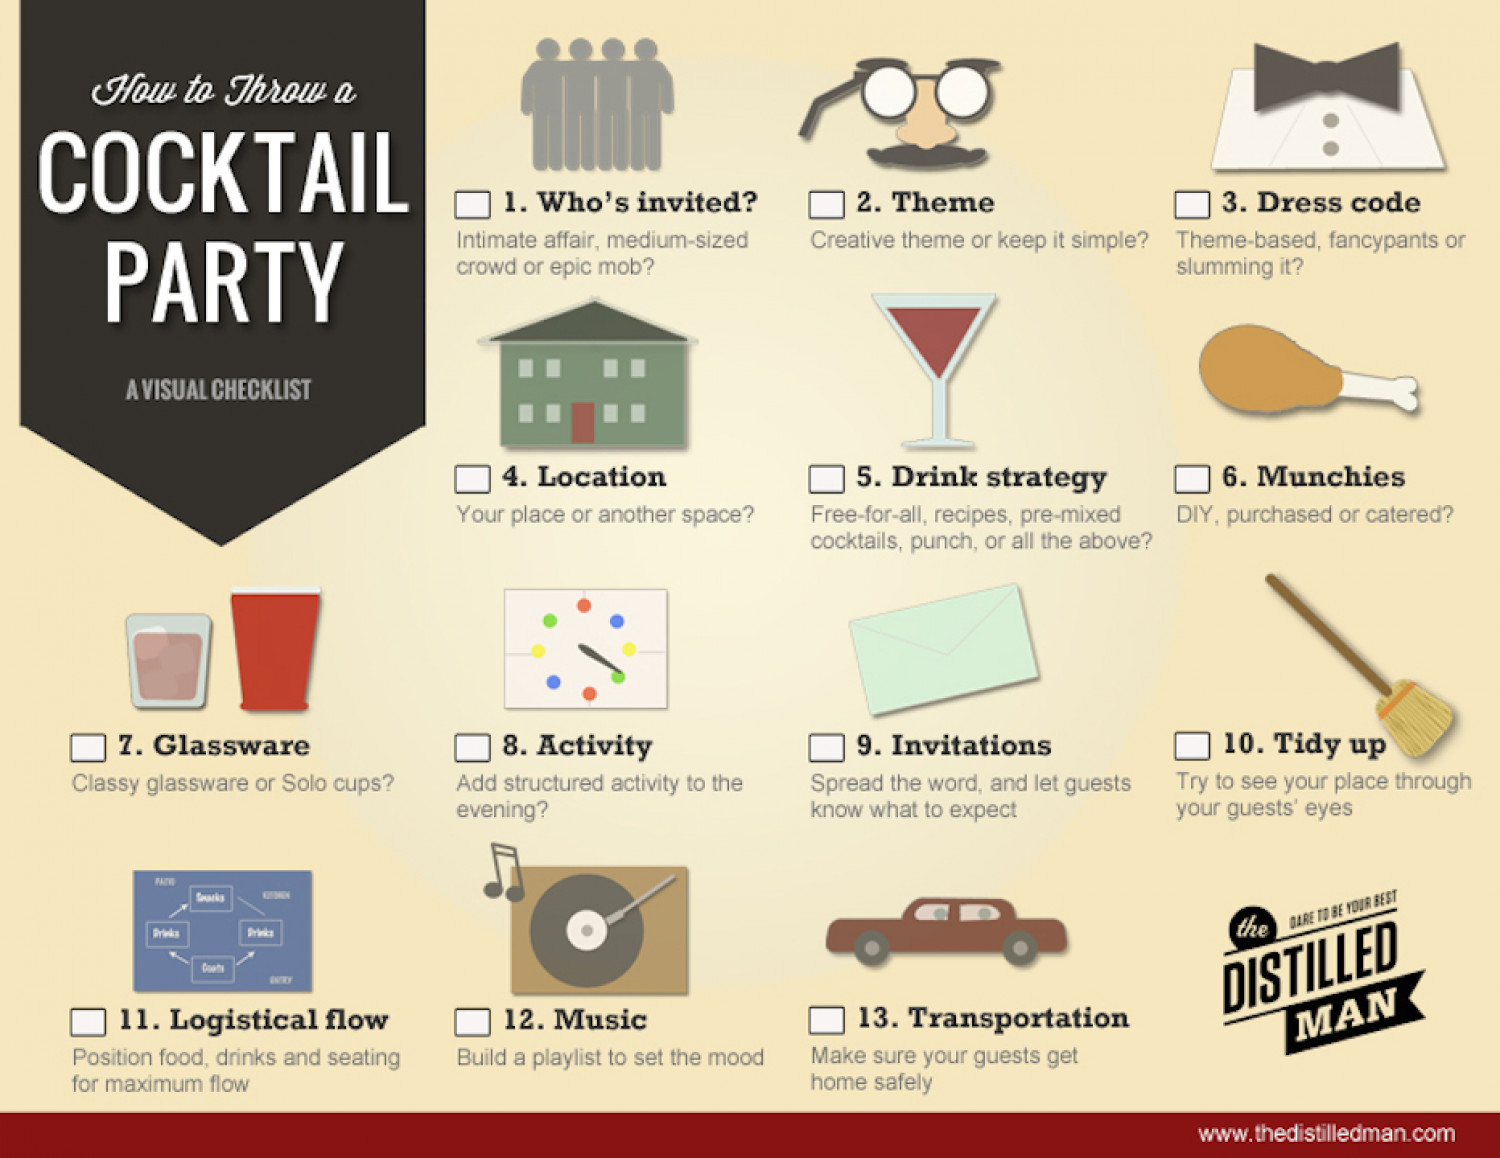 How to Plan the Perfect Cocktail Party: A Visual Guide Infographic